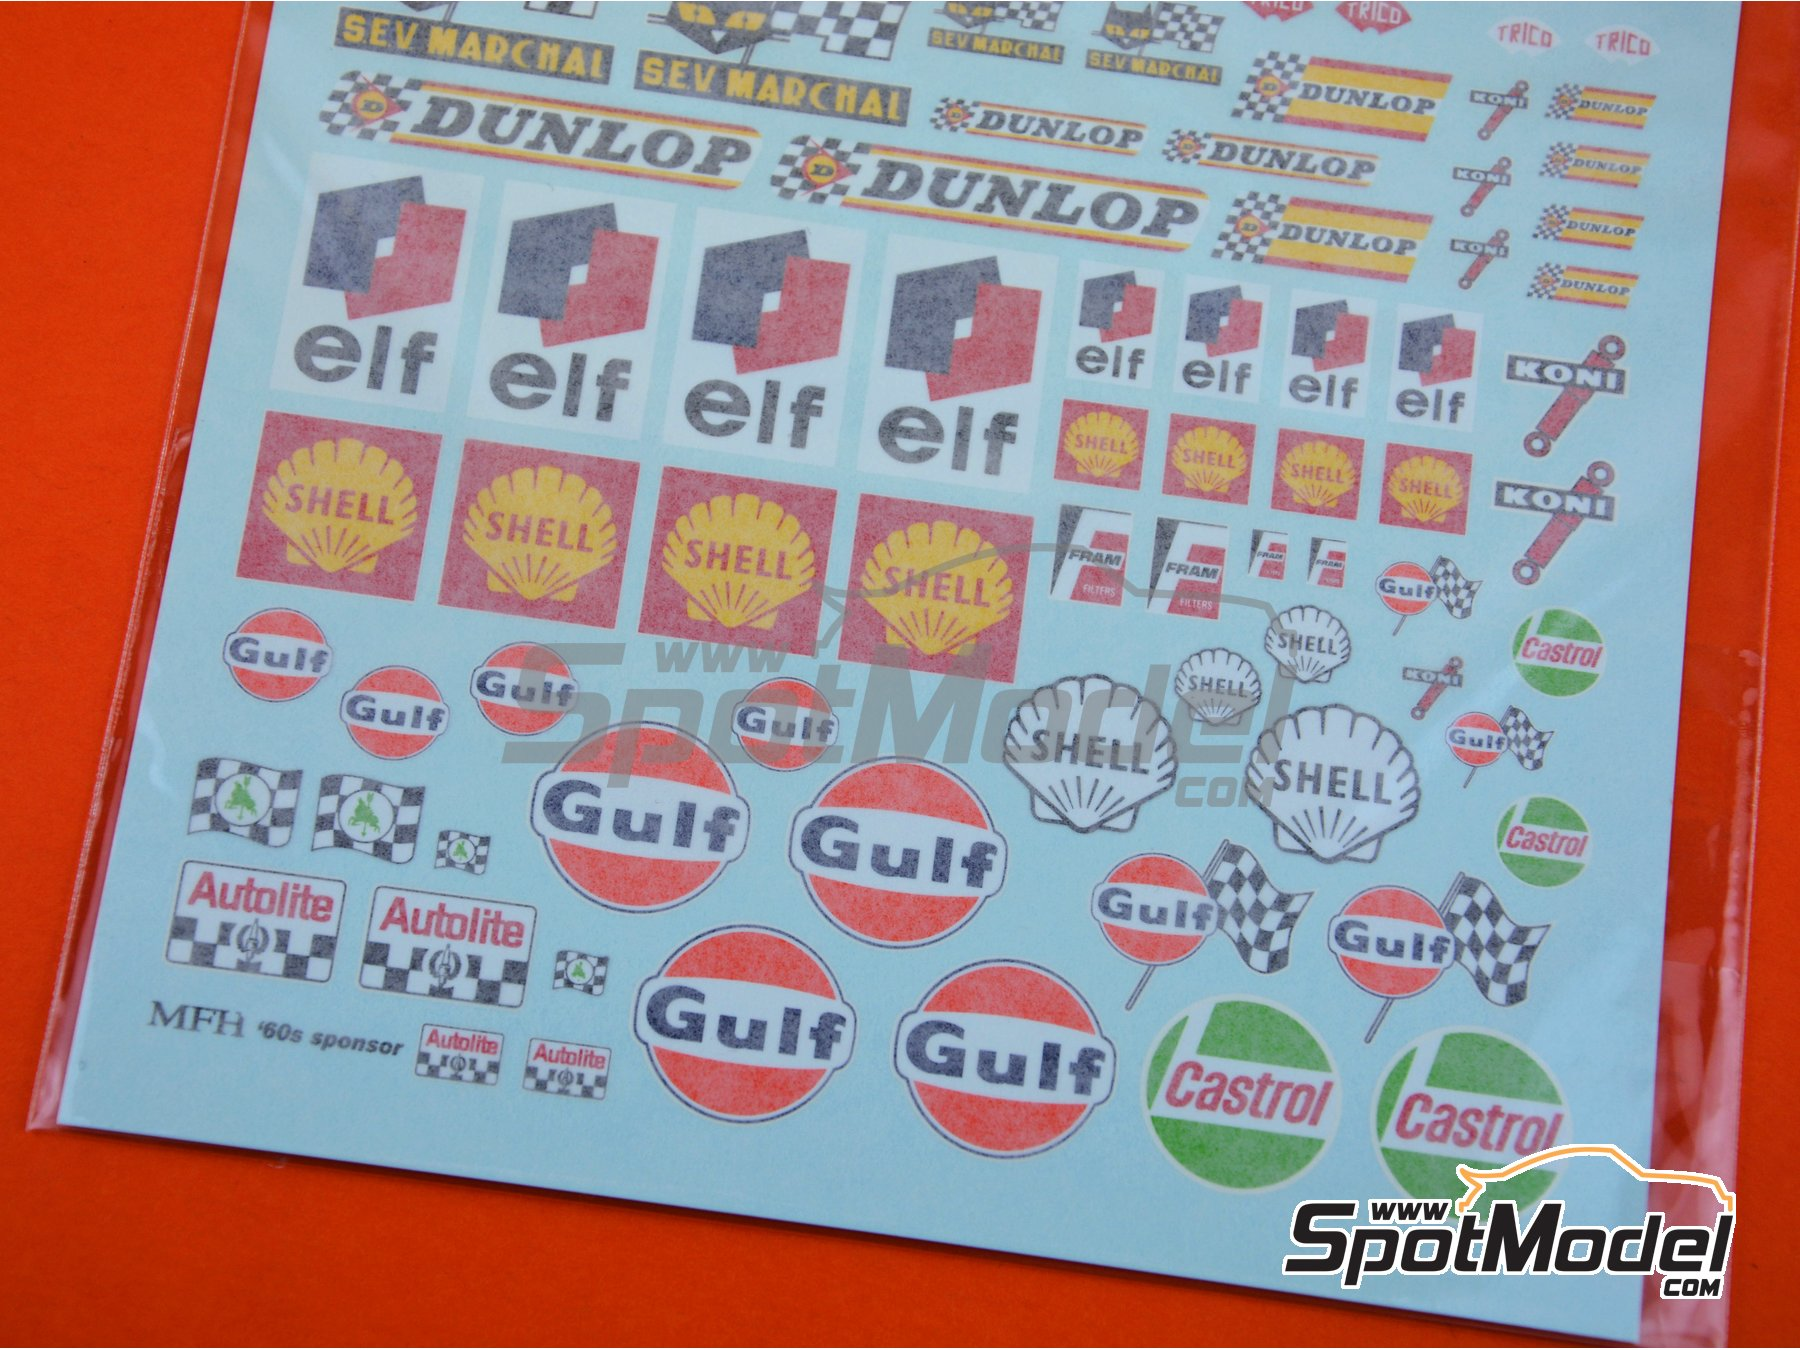 Image 4: 1960's sponsors: Ferodo, Bosch, Girling, Cibie, STP, Champion, Firestone, Trico, Dunlop, Castrol, Gulf, Shell, ELF, Koni... | Logotypes manufactured by Model Factory Hiro (ref. MFH-P1124)